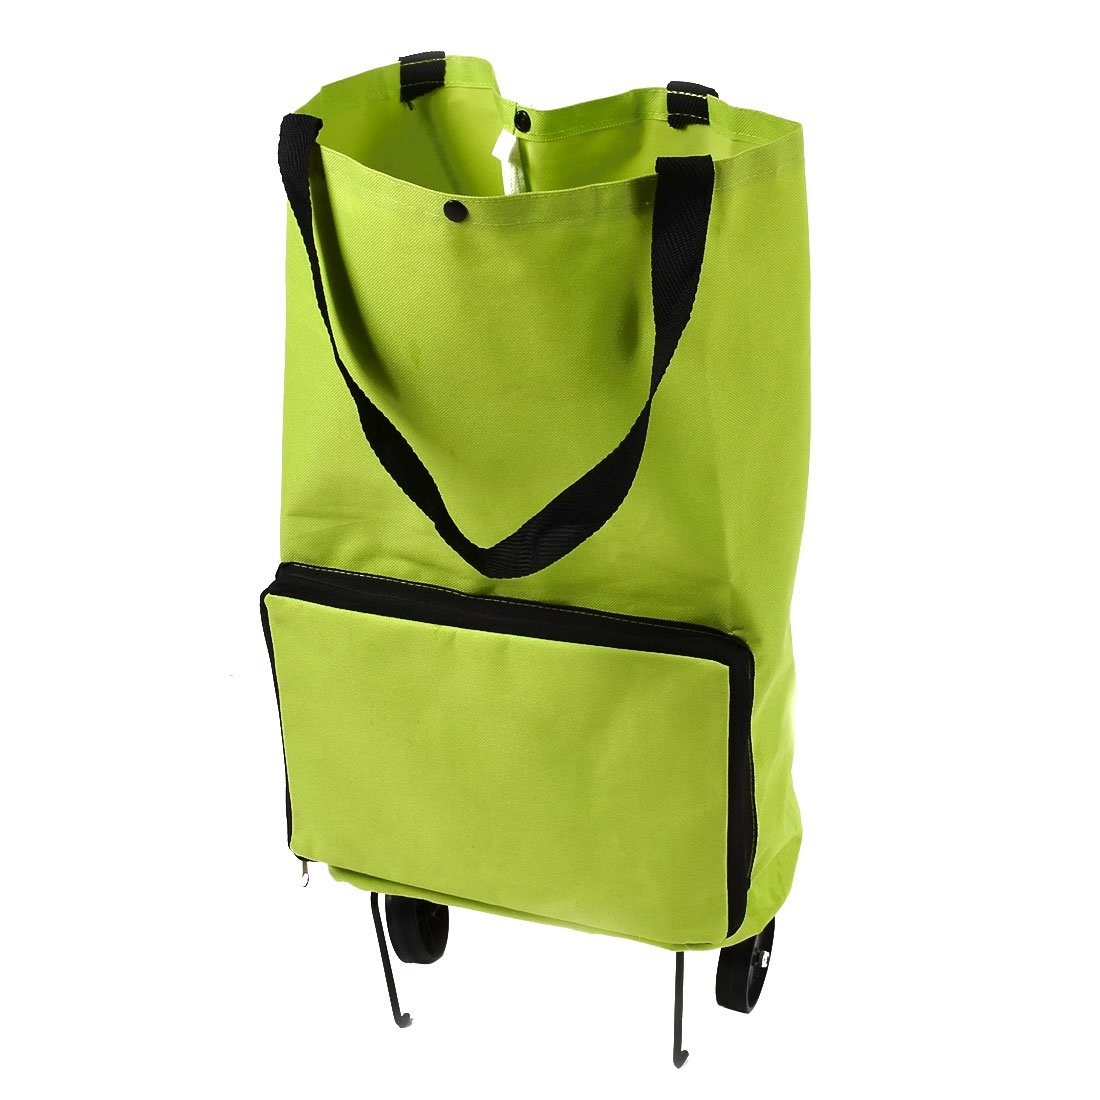 uxcell Polyester Handy Foldable Bag Wheel Cart Shopping Trolley Green a16031500ux1943